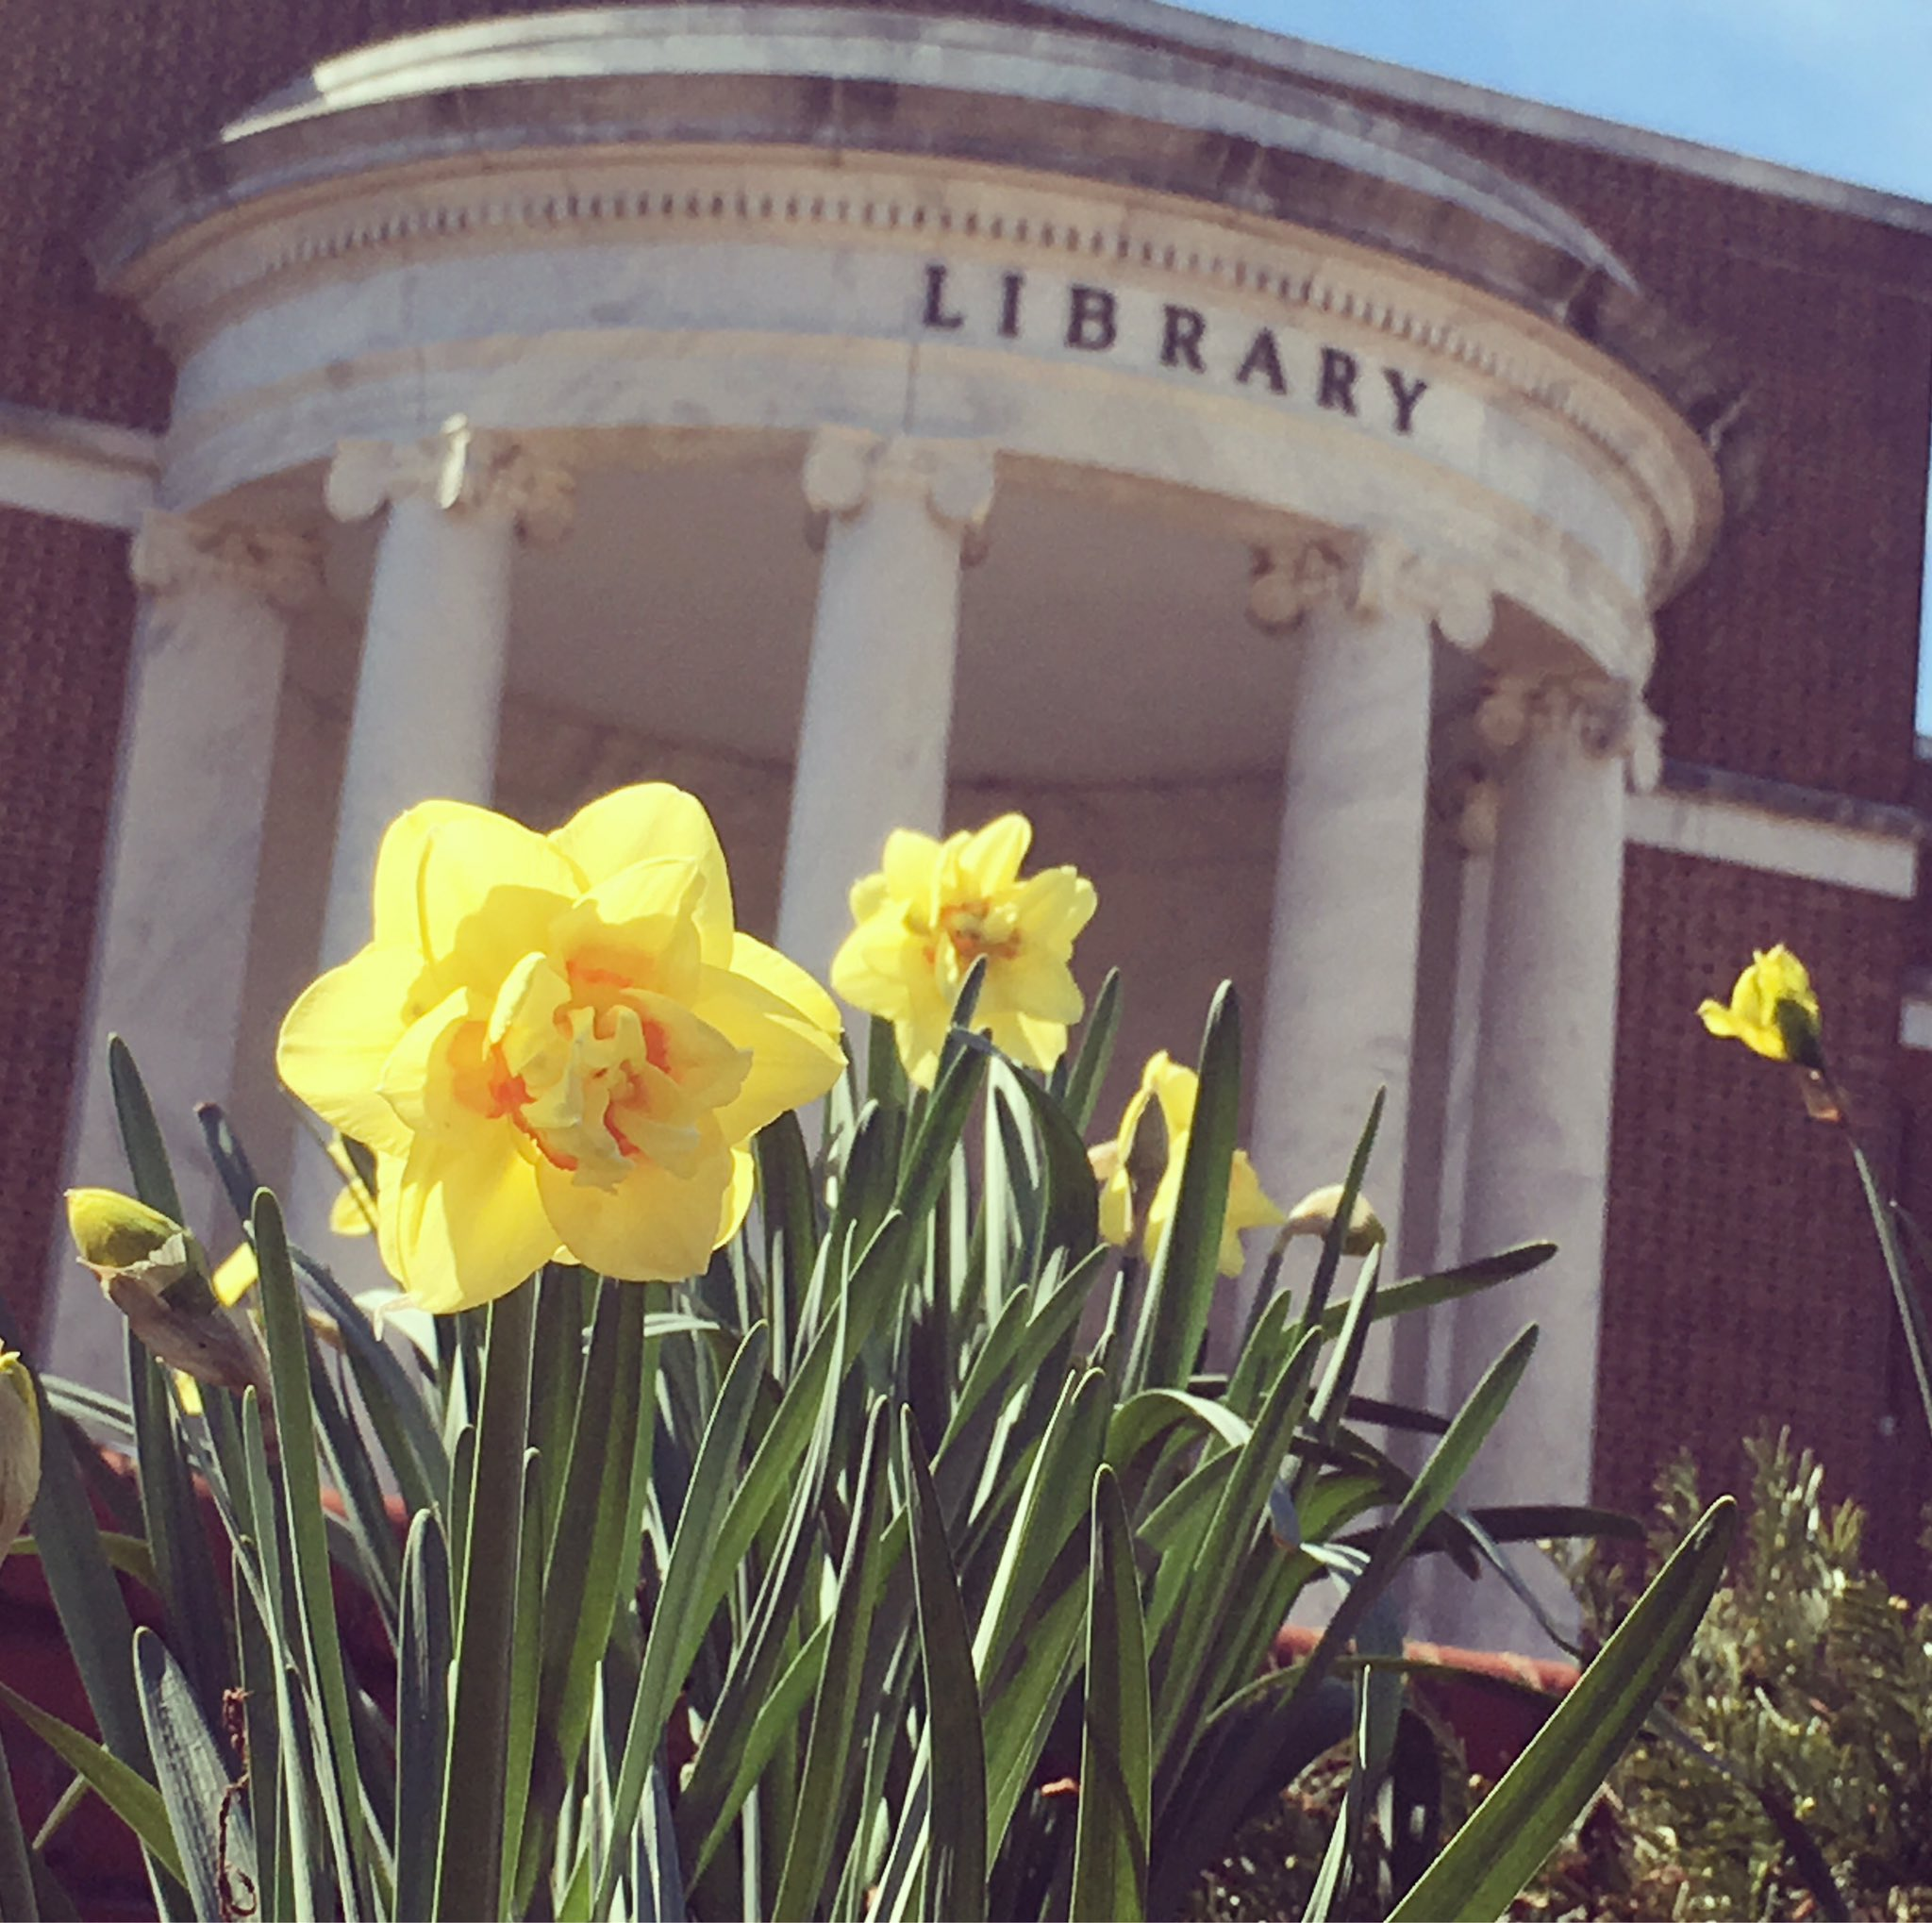 We're so delighted that spring is here. We look forward to seeing those pretty campus photos! 🌷#SpartanSpring #SeetheG https://t.co/CWTceznWLs